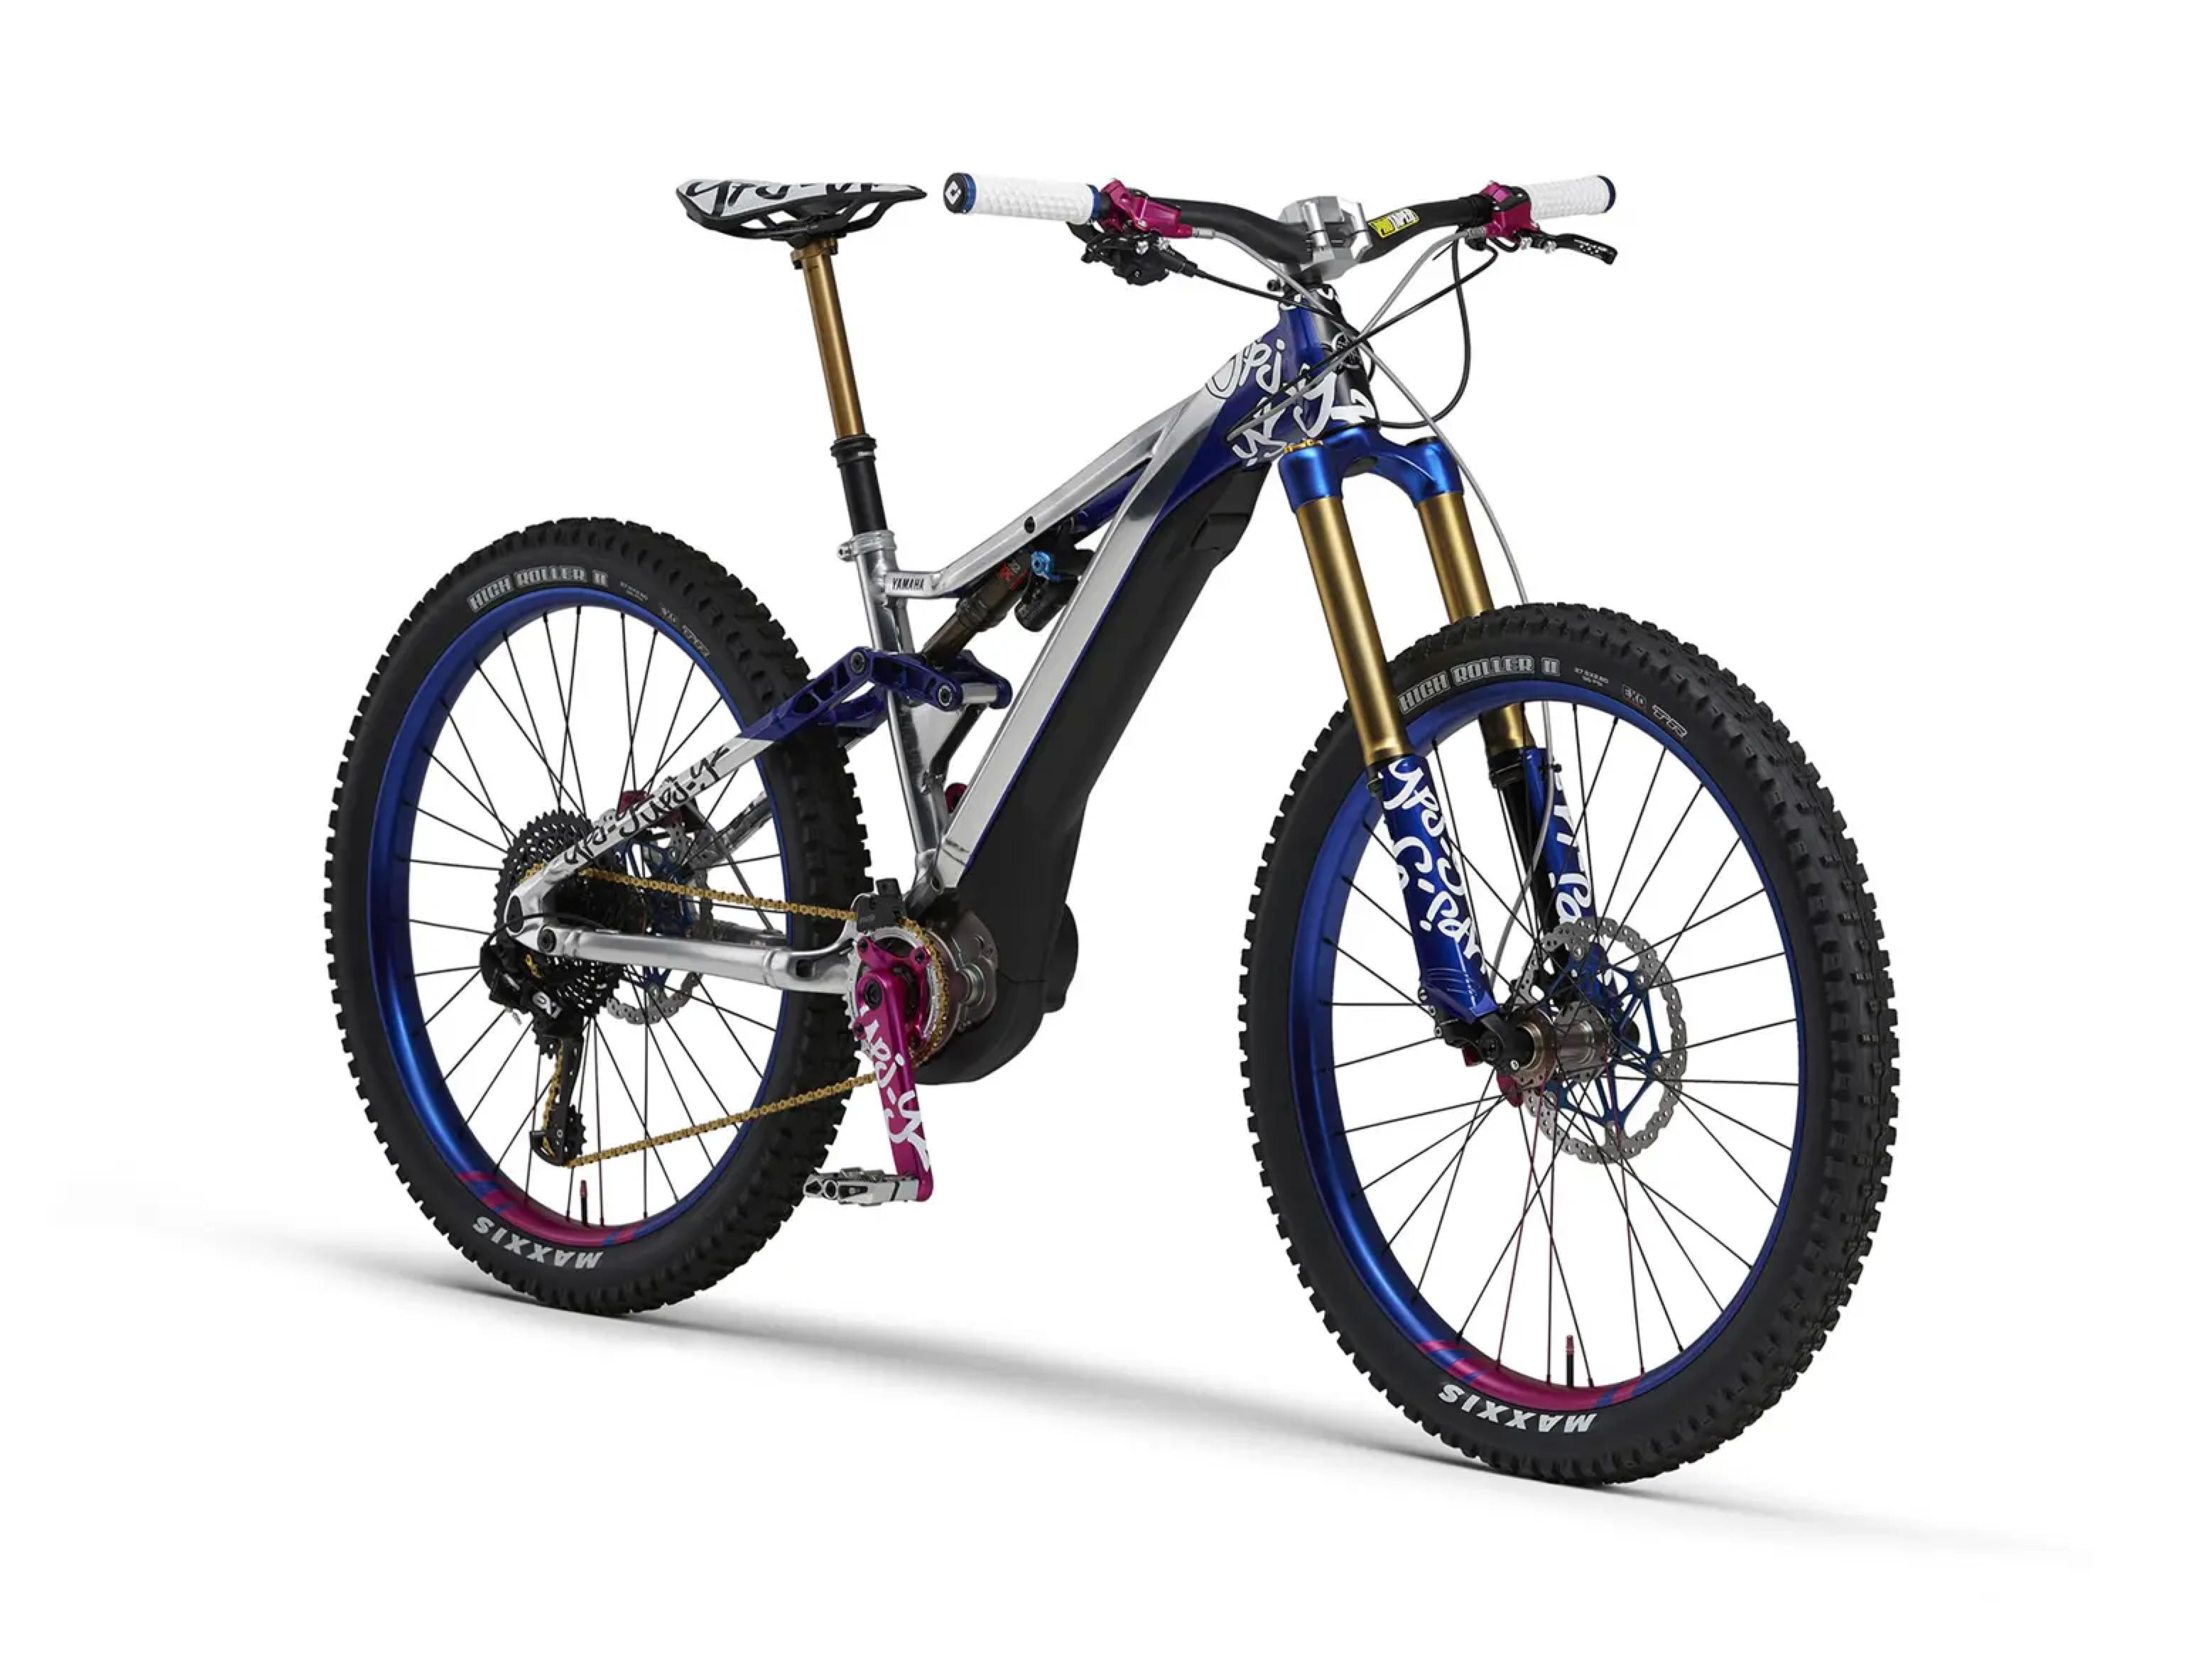 E Mountain Bike >> Are Yamaha About To Release Their Own E Mountain Bike Mbr